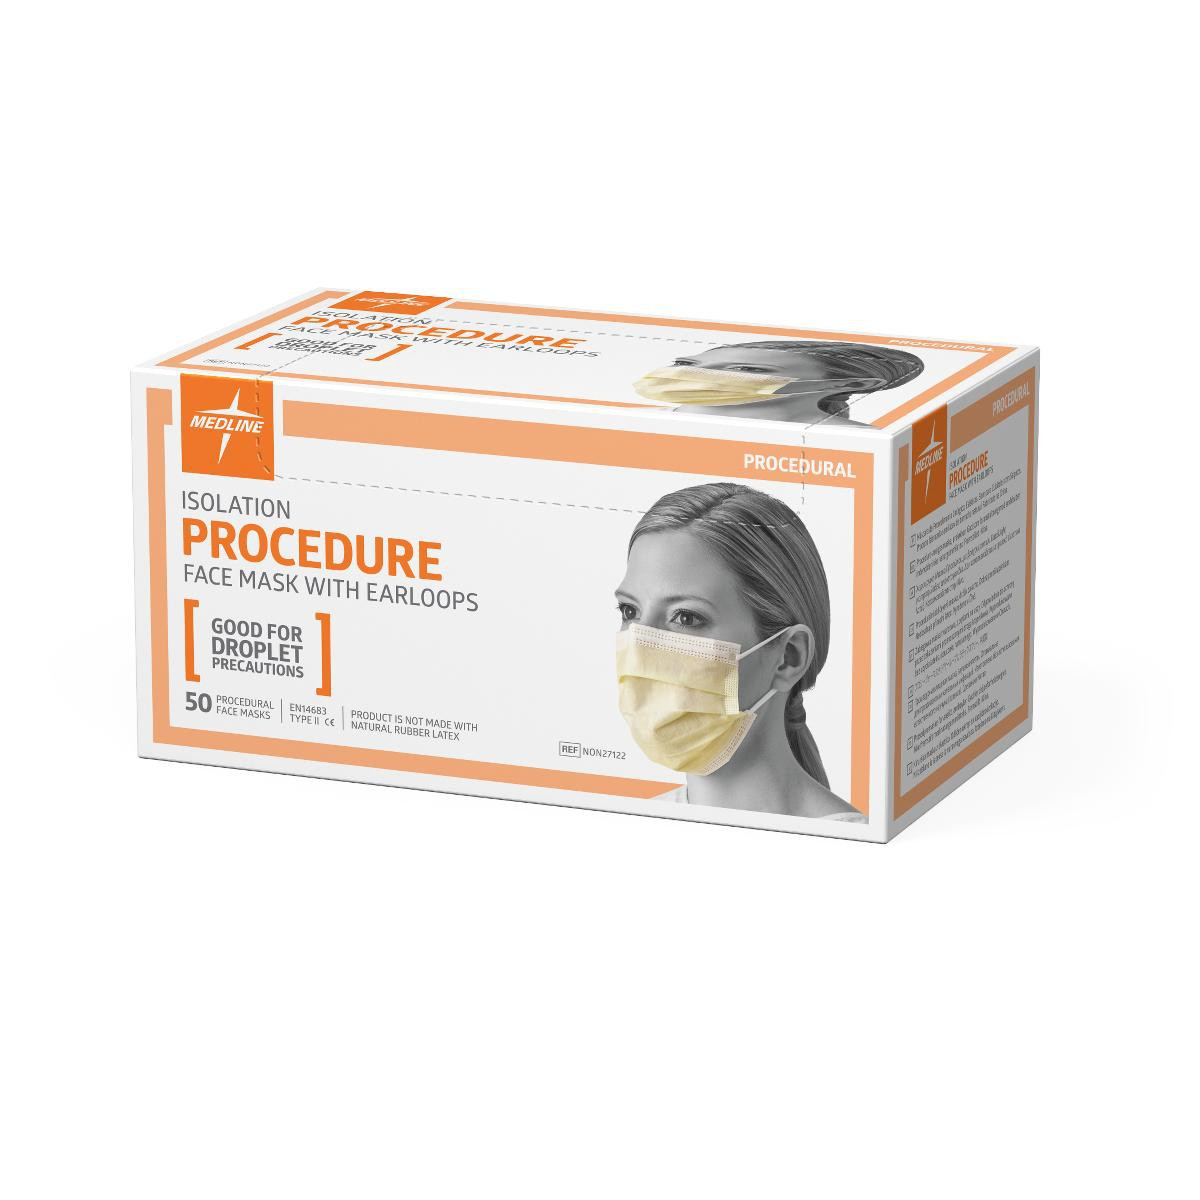 Medline Prohibit Isolation Face Mask W Earloops Latex